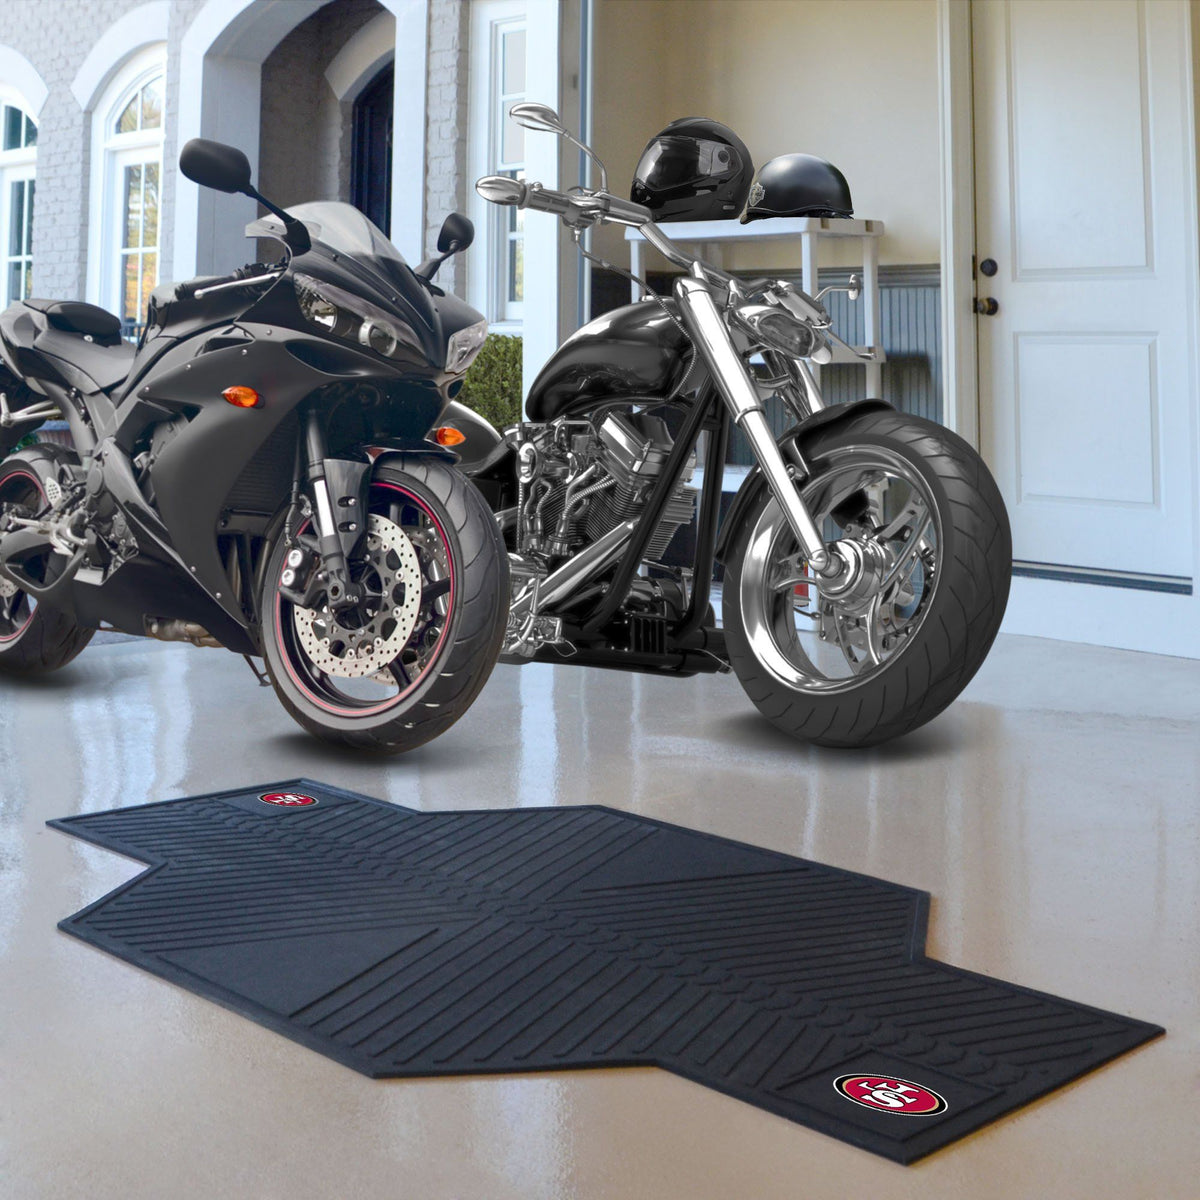 "NFL - Motorcycle Mat, 82.5"" x 42"" NFL Mats, Motorcycle Accessory, Motorcycle Mat, NFL, Auto Fan Mats San Francisco 49ers"